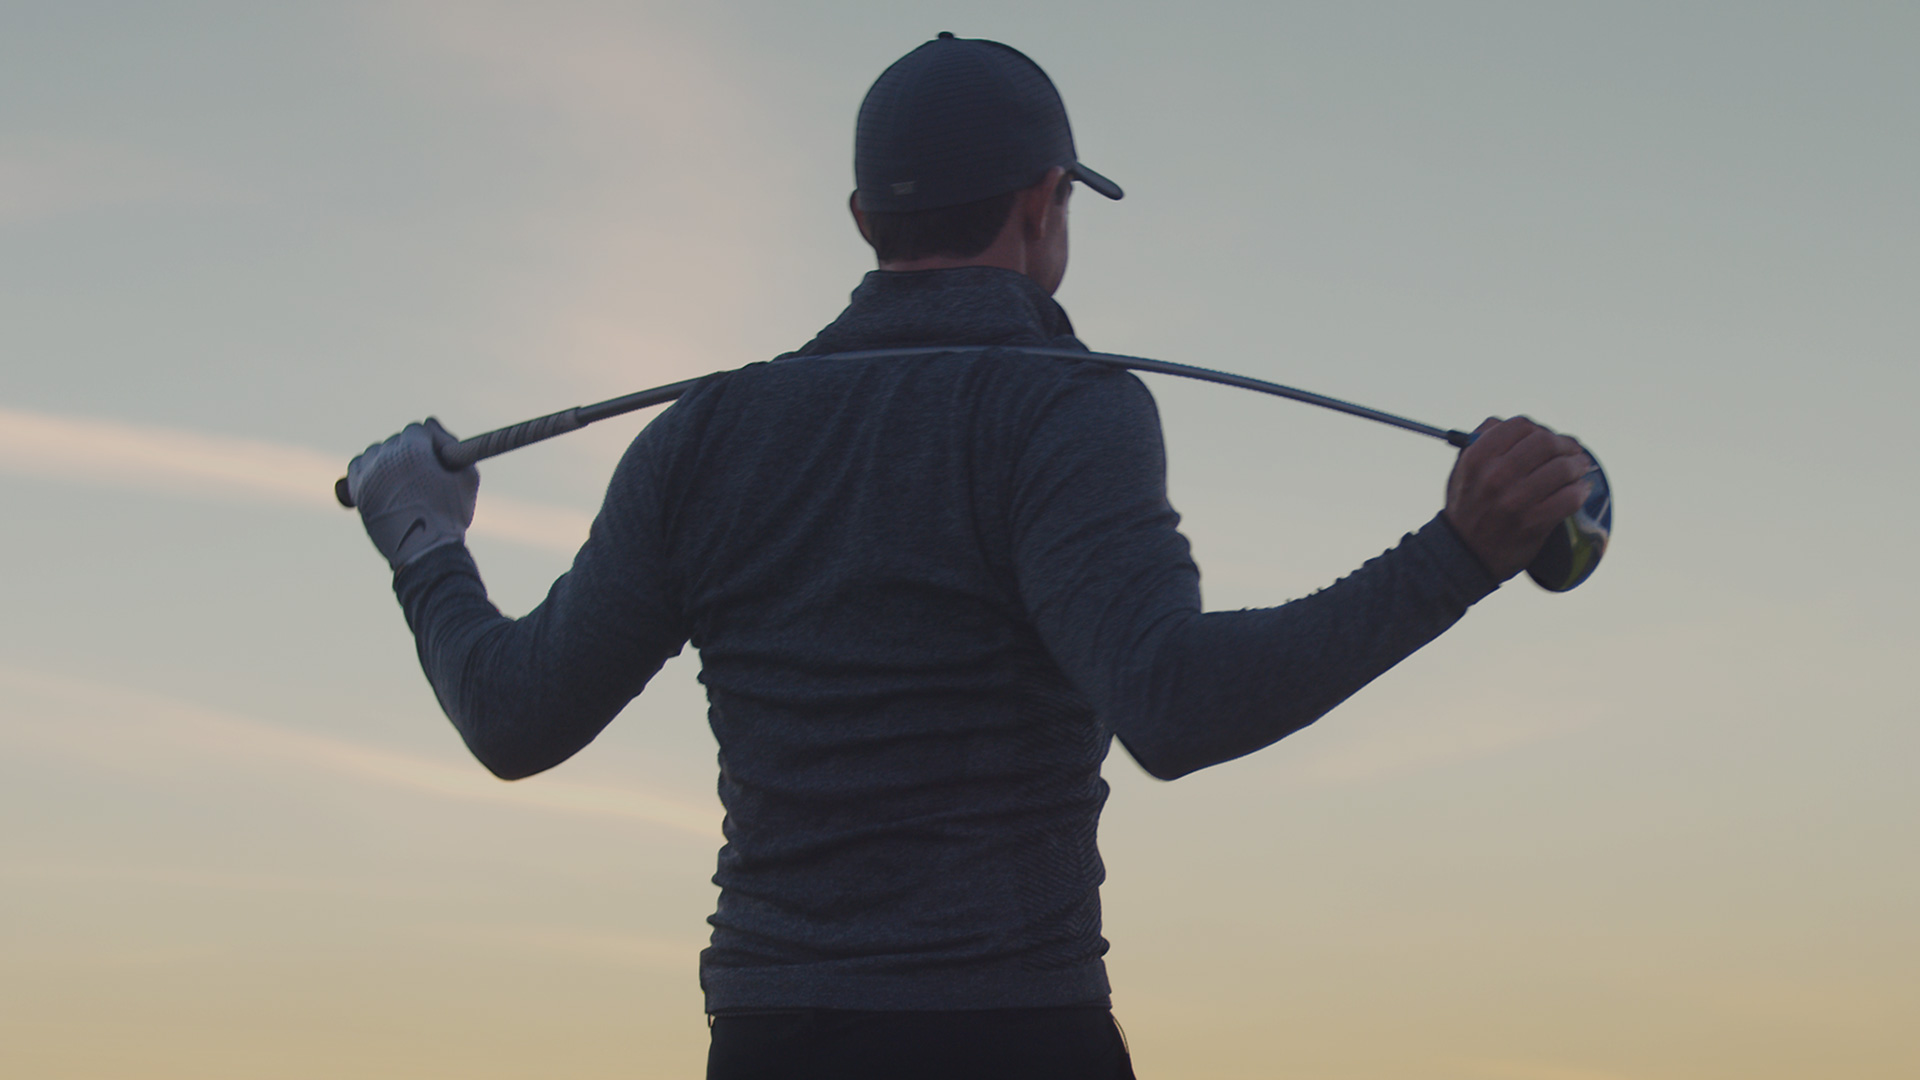 Rory McIlroy Gets Serious In His Most Intense Nike Golf Commercial Yet Adweek